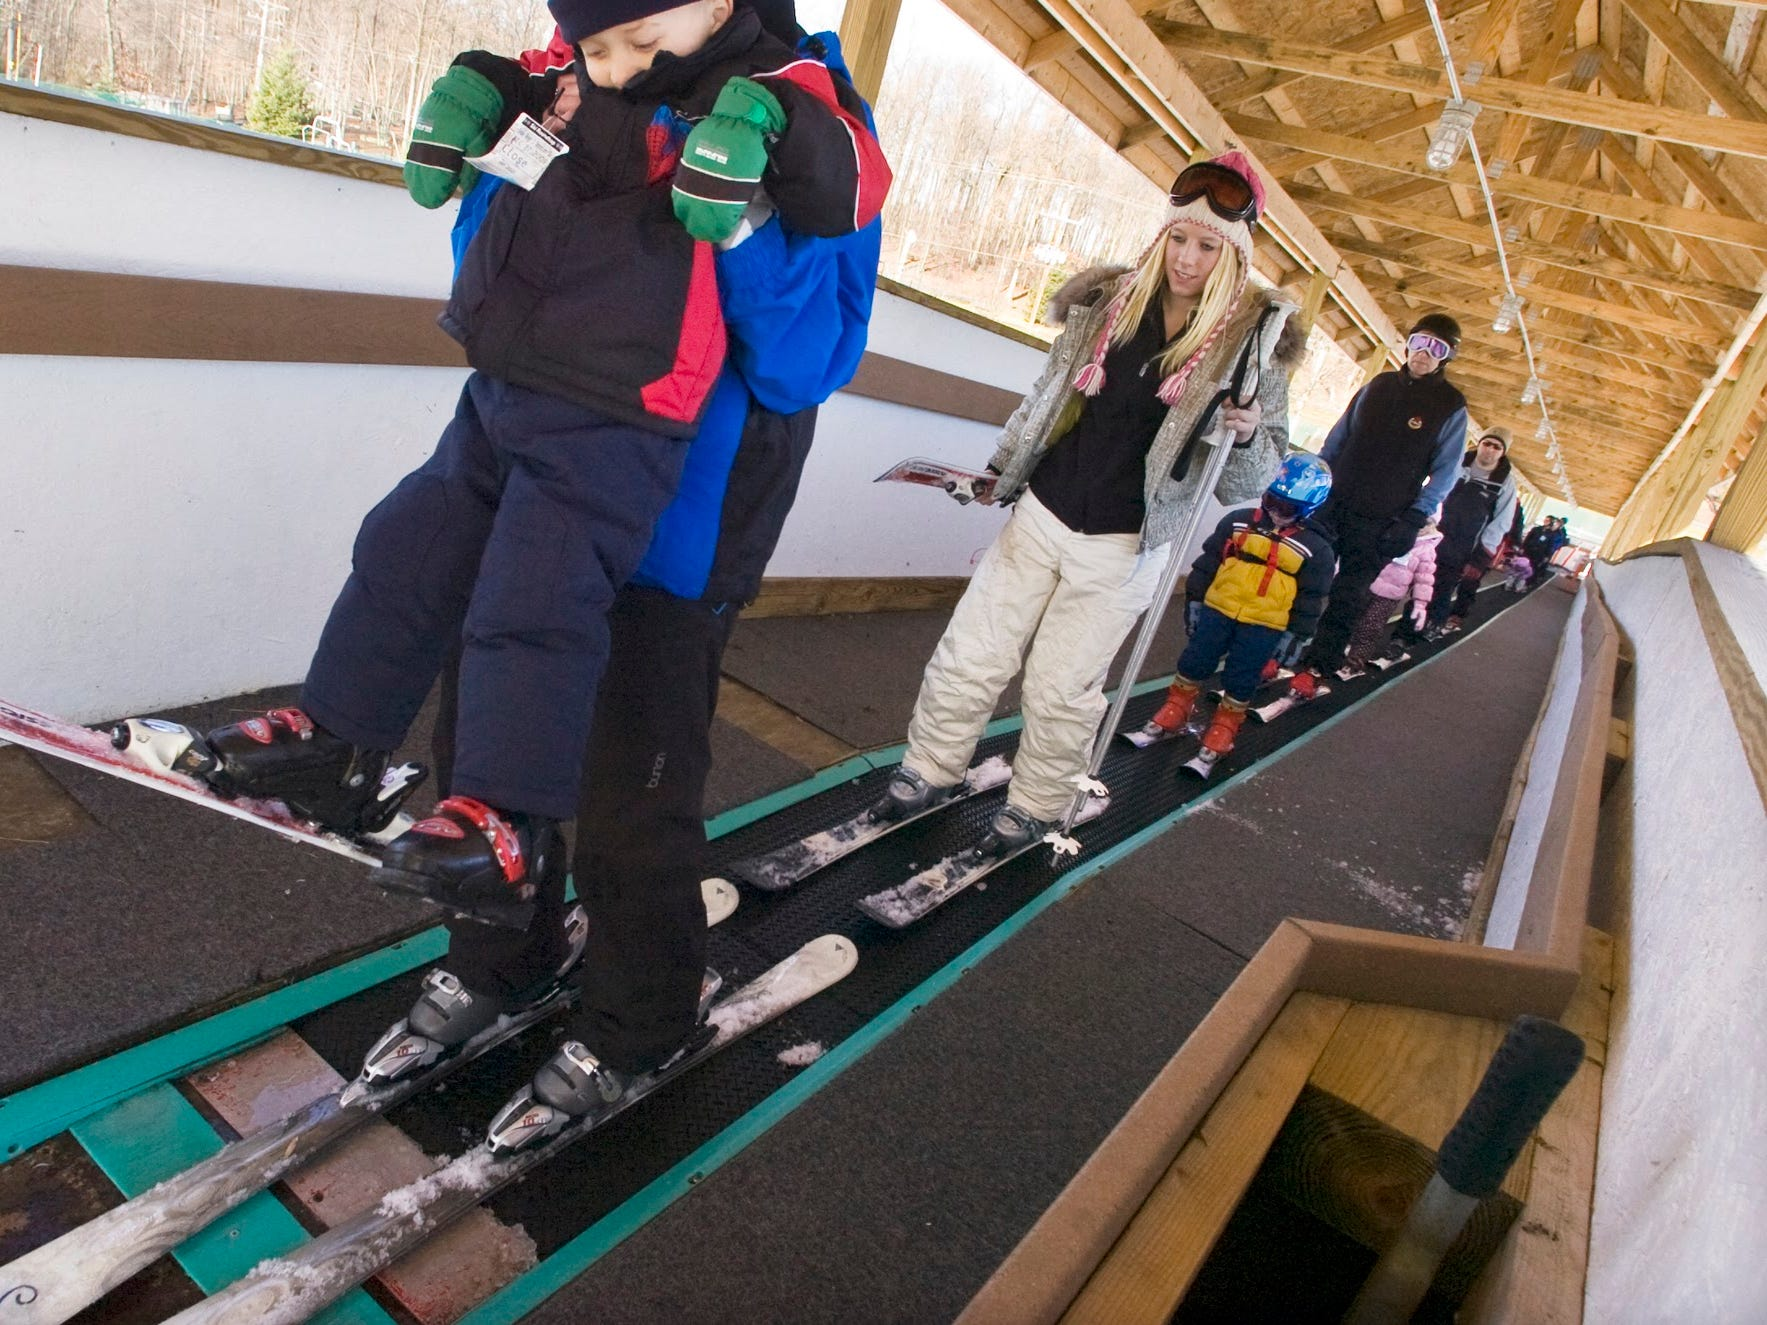 Dylan Sharpe, of Crofton, Md. gets a boost from a ski instructor at Ski Roundtop Sunday as he exits a lift the first time designed for beginners. Sharpe was taking his first ski class December 27, 2009.